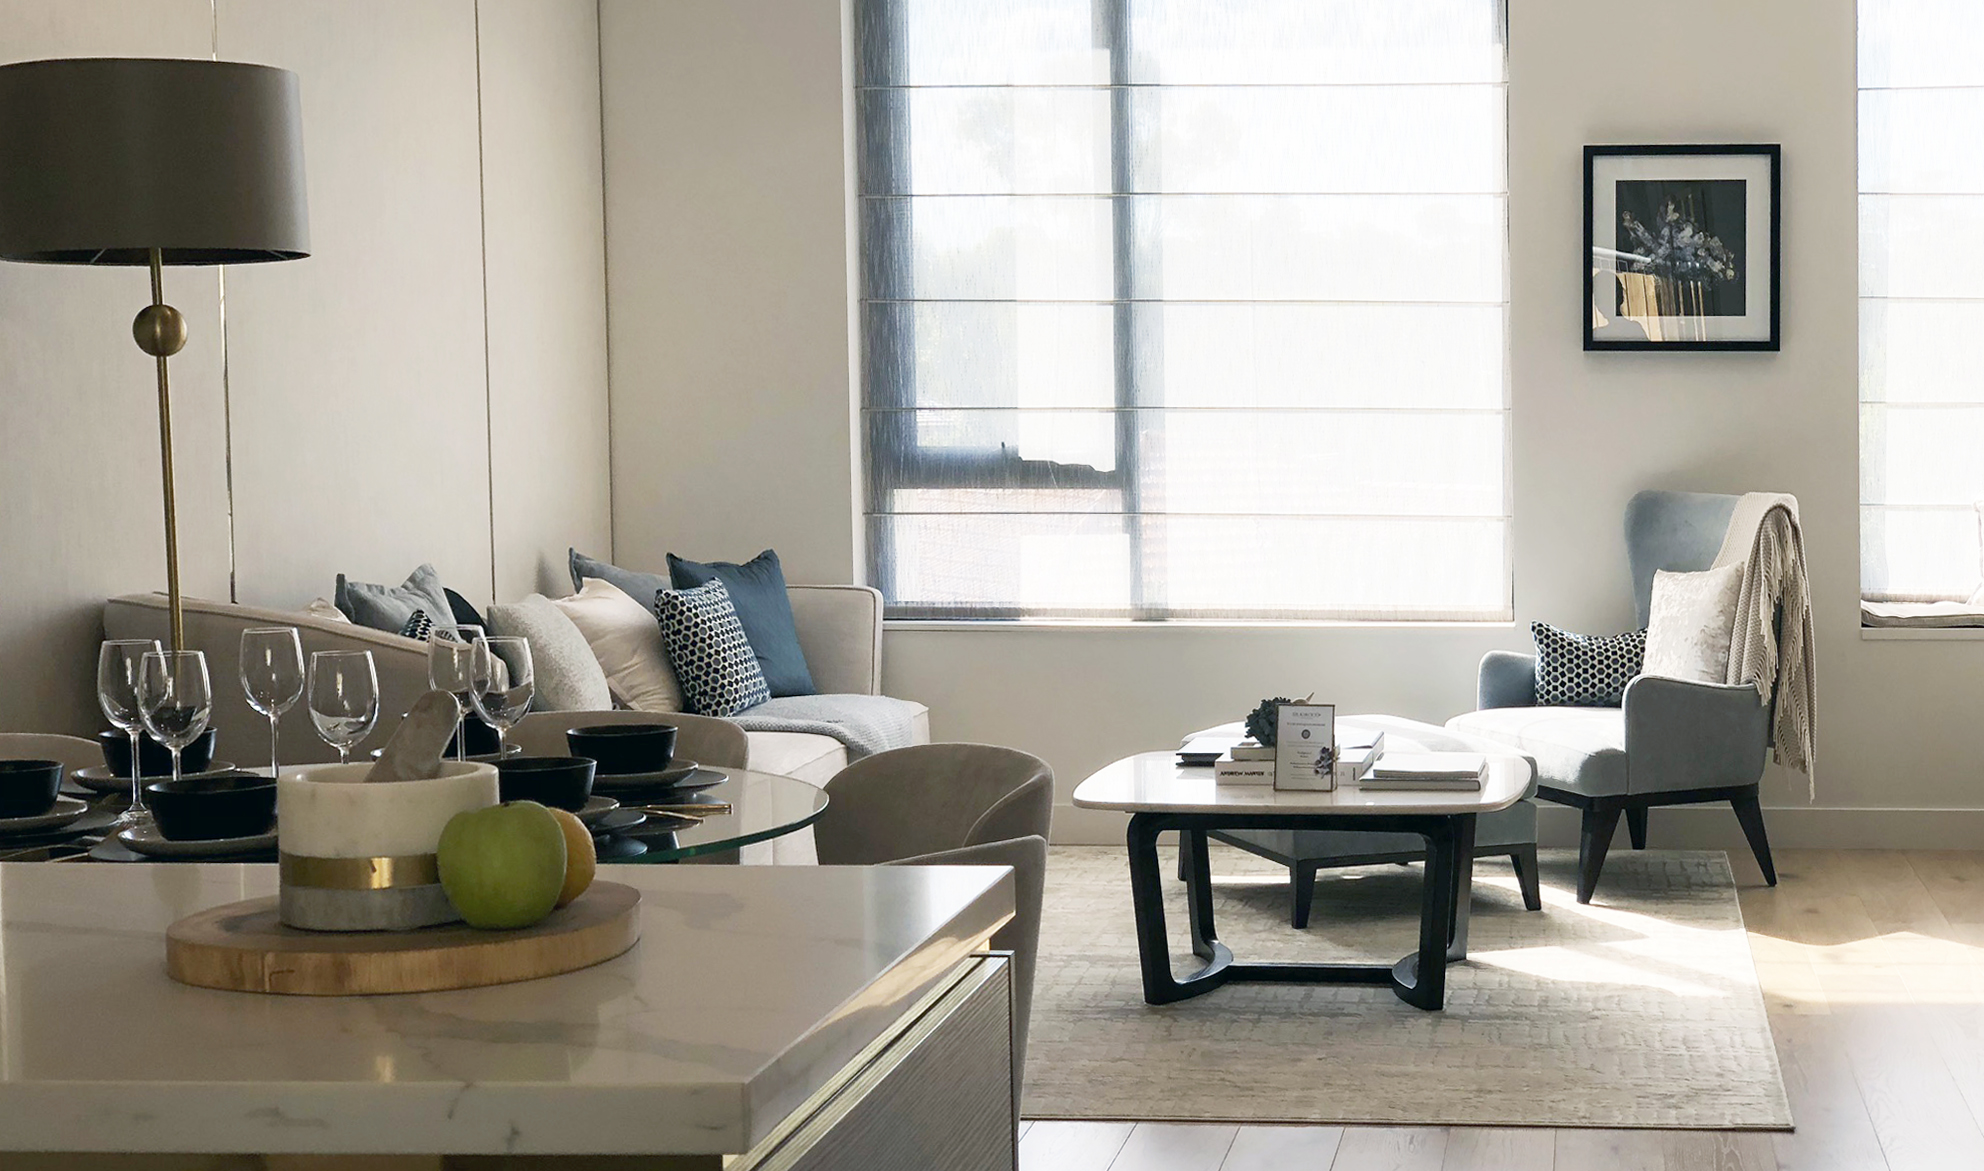 S Pagewood townhouse interior 04